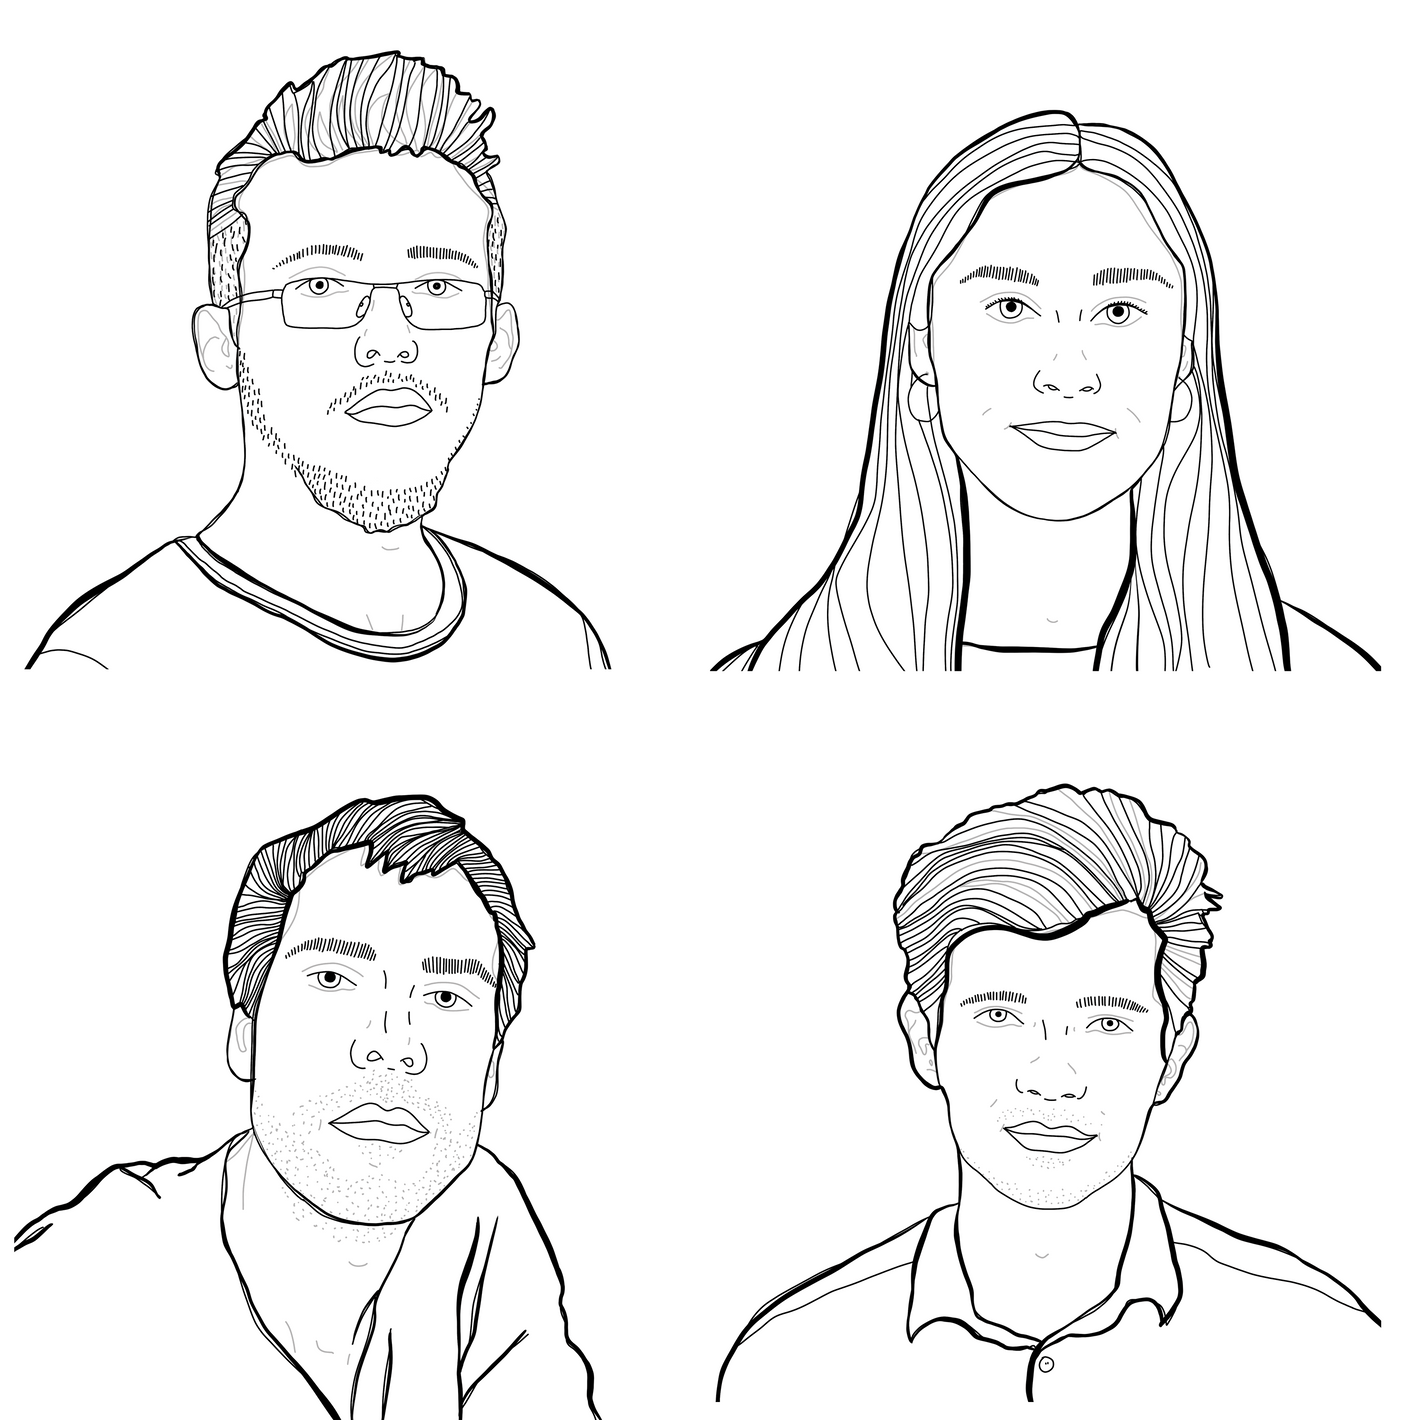 Four portraits arranged in the four corners of a square.